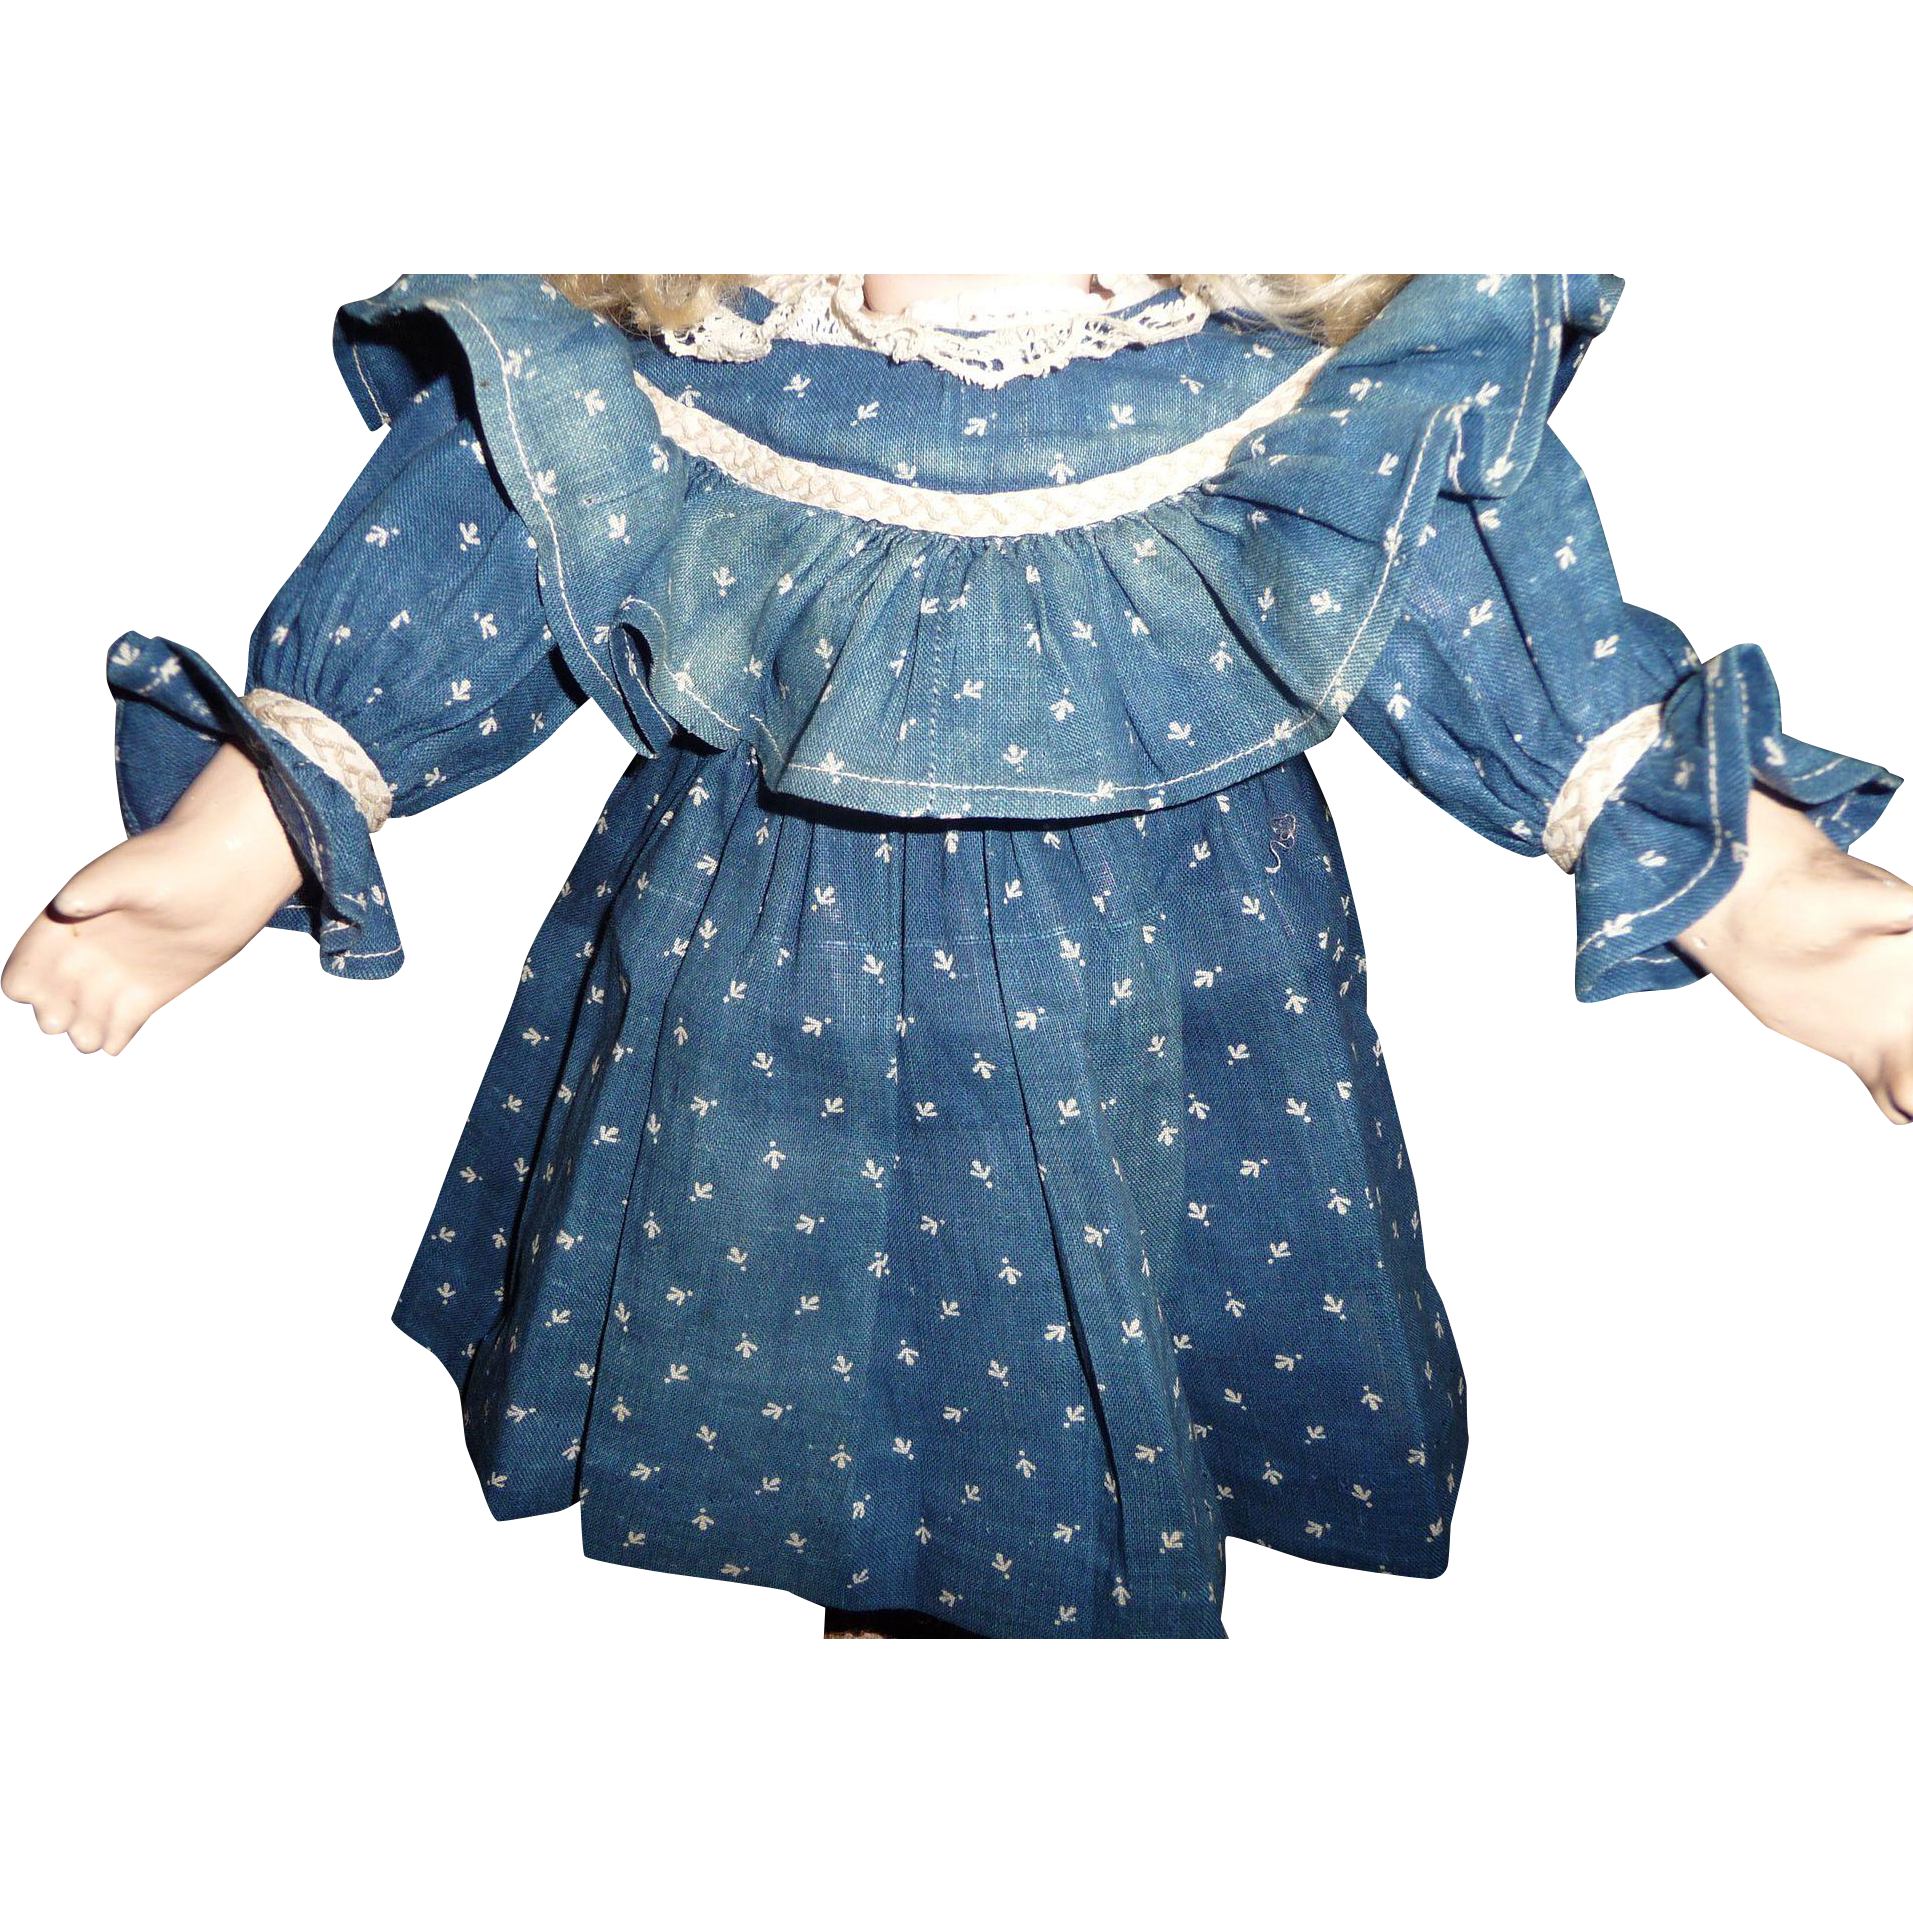 Antique doll dress small size blue calico authentic antique for german or french doll